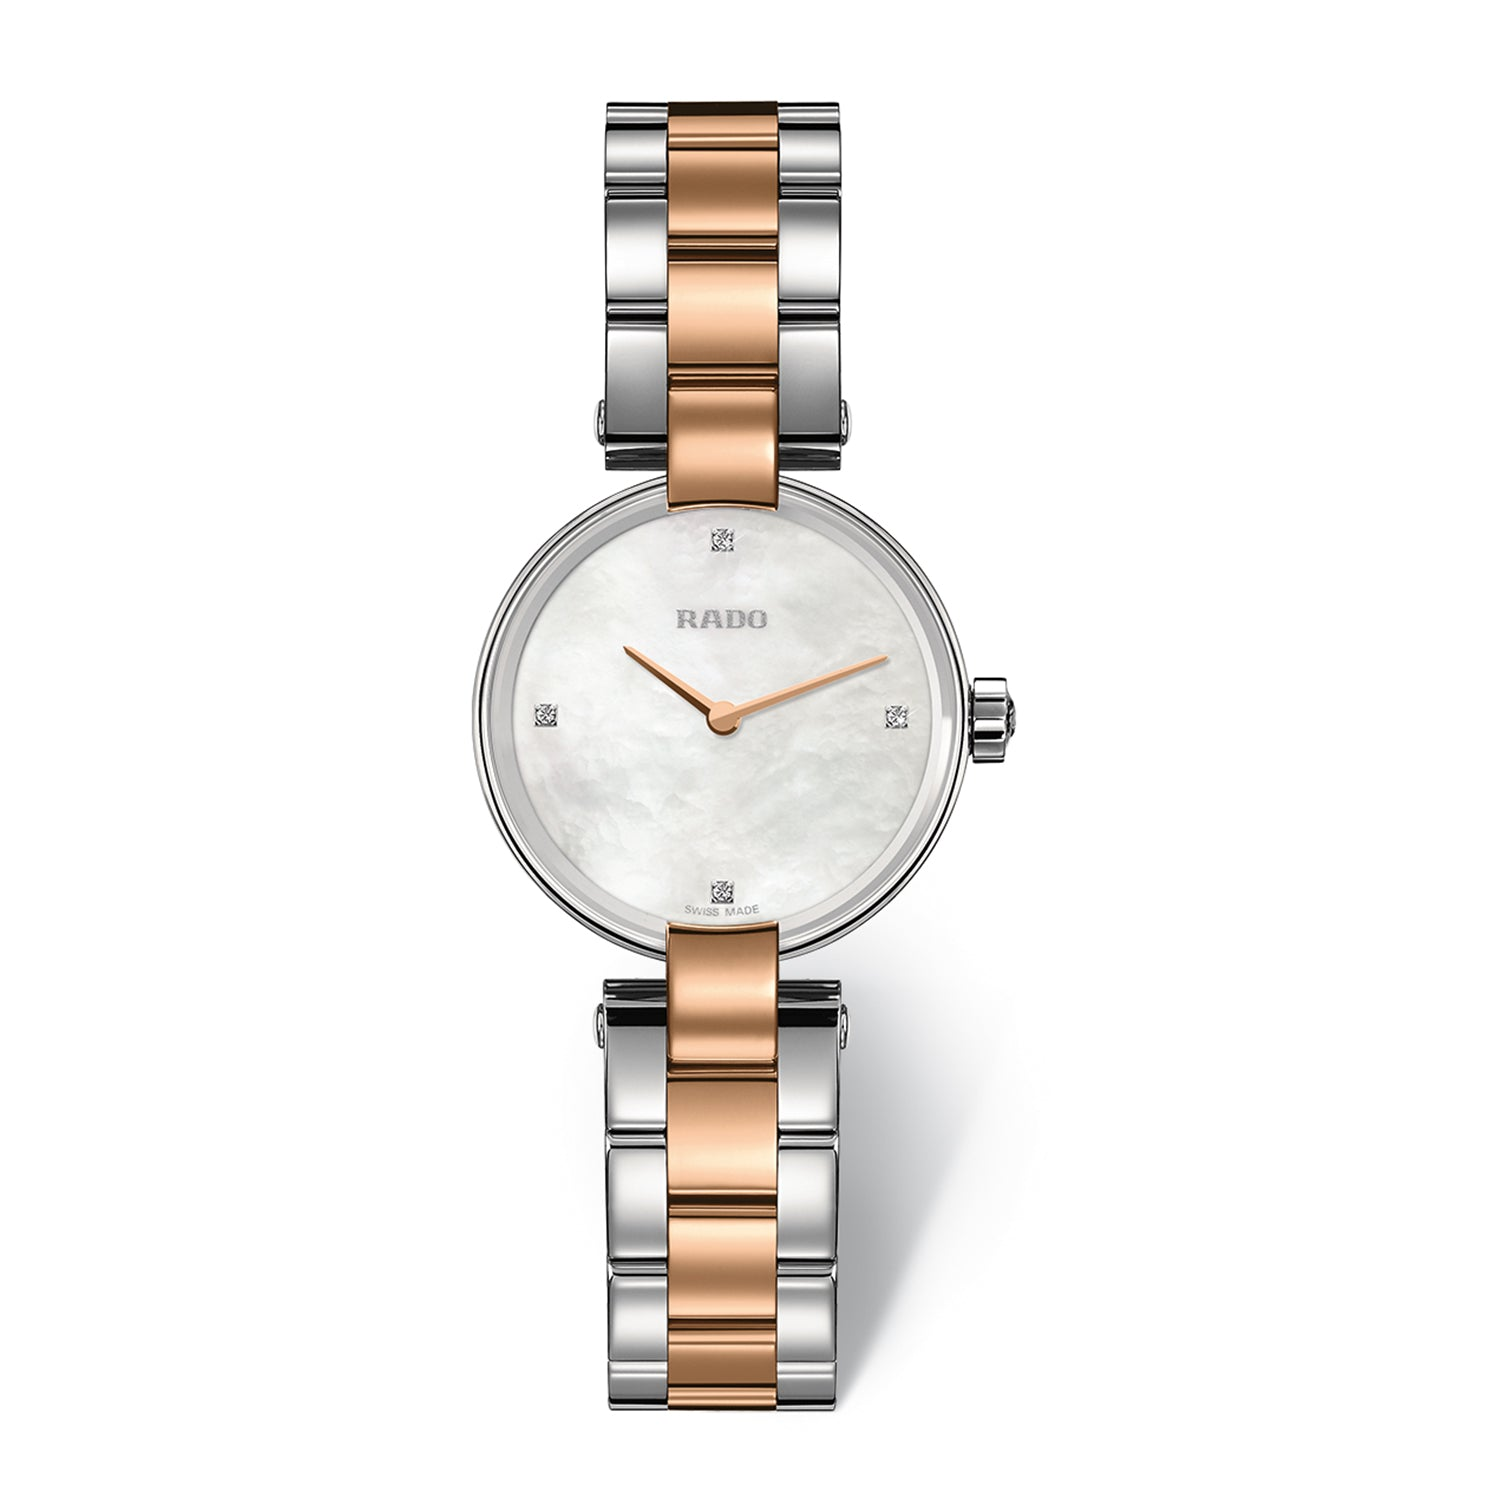 Rado Coupole S watch, Rose PVD with Stainless steel bracelet, Mother of Pearl dial